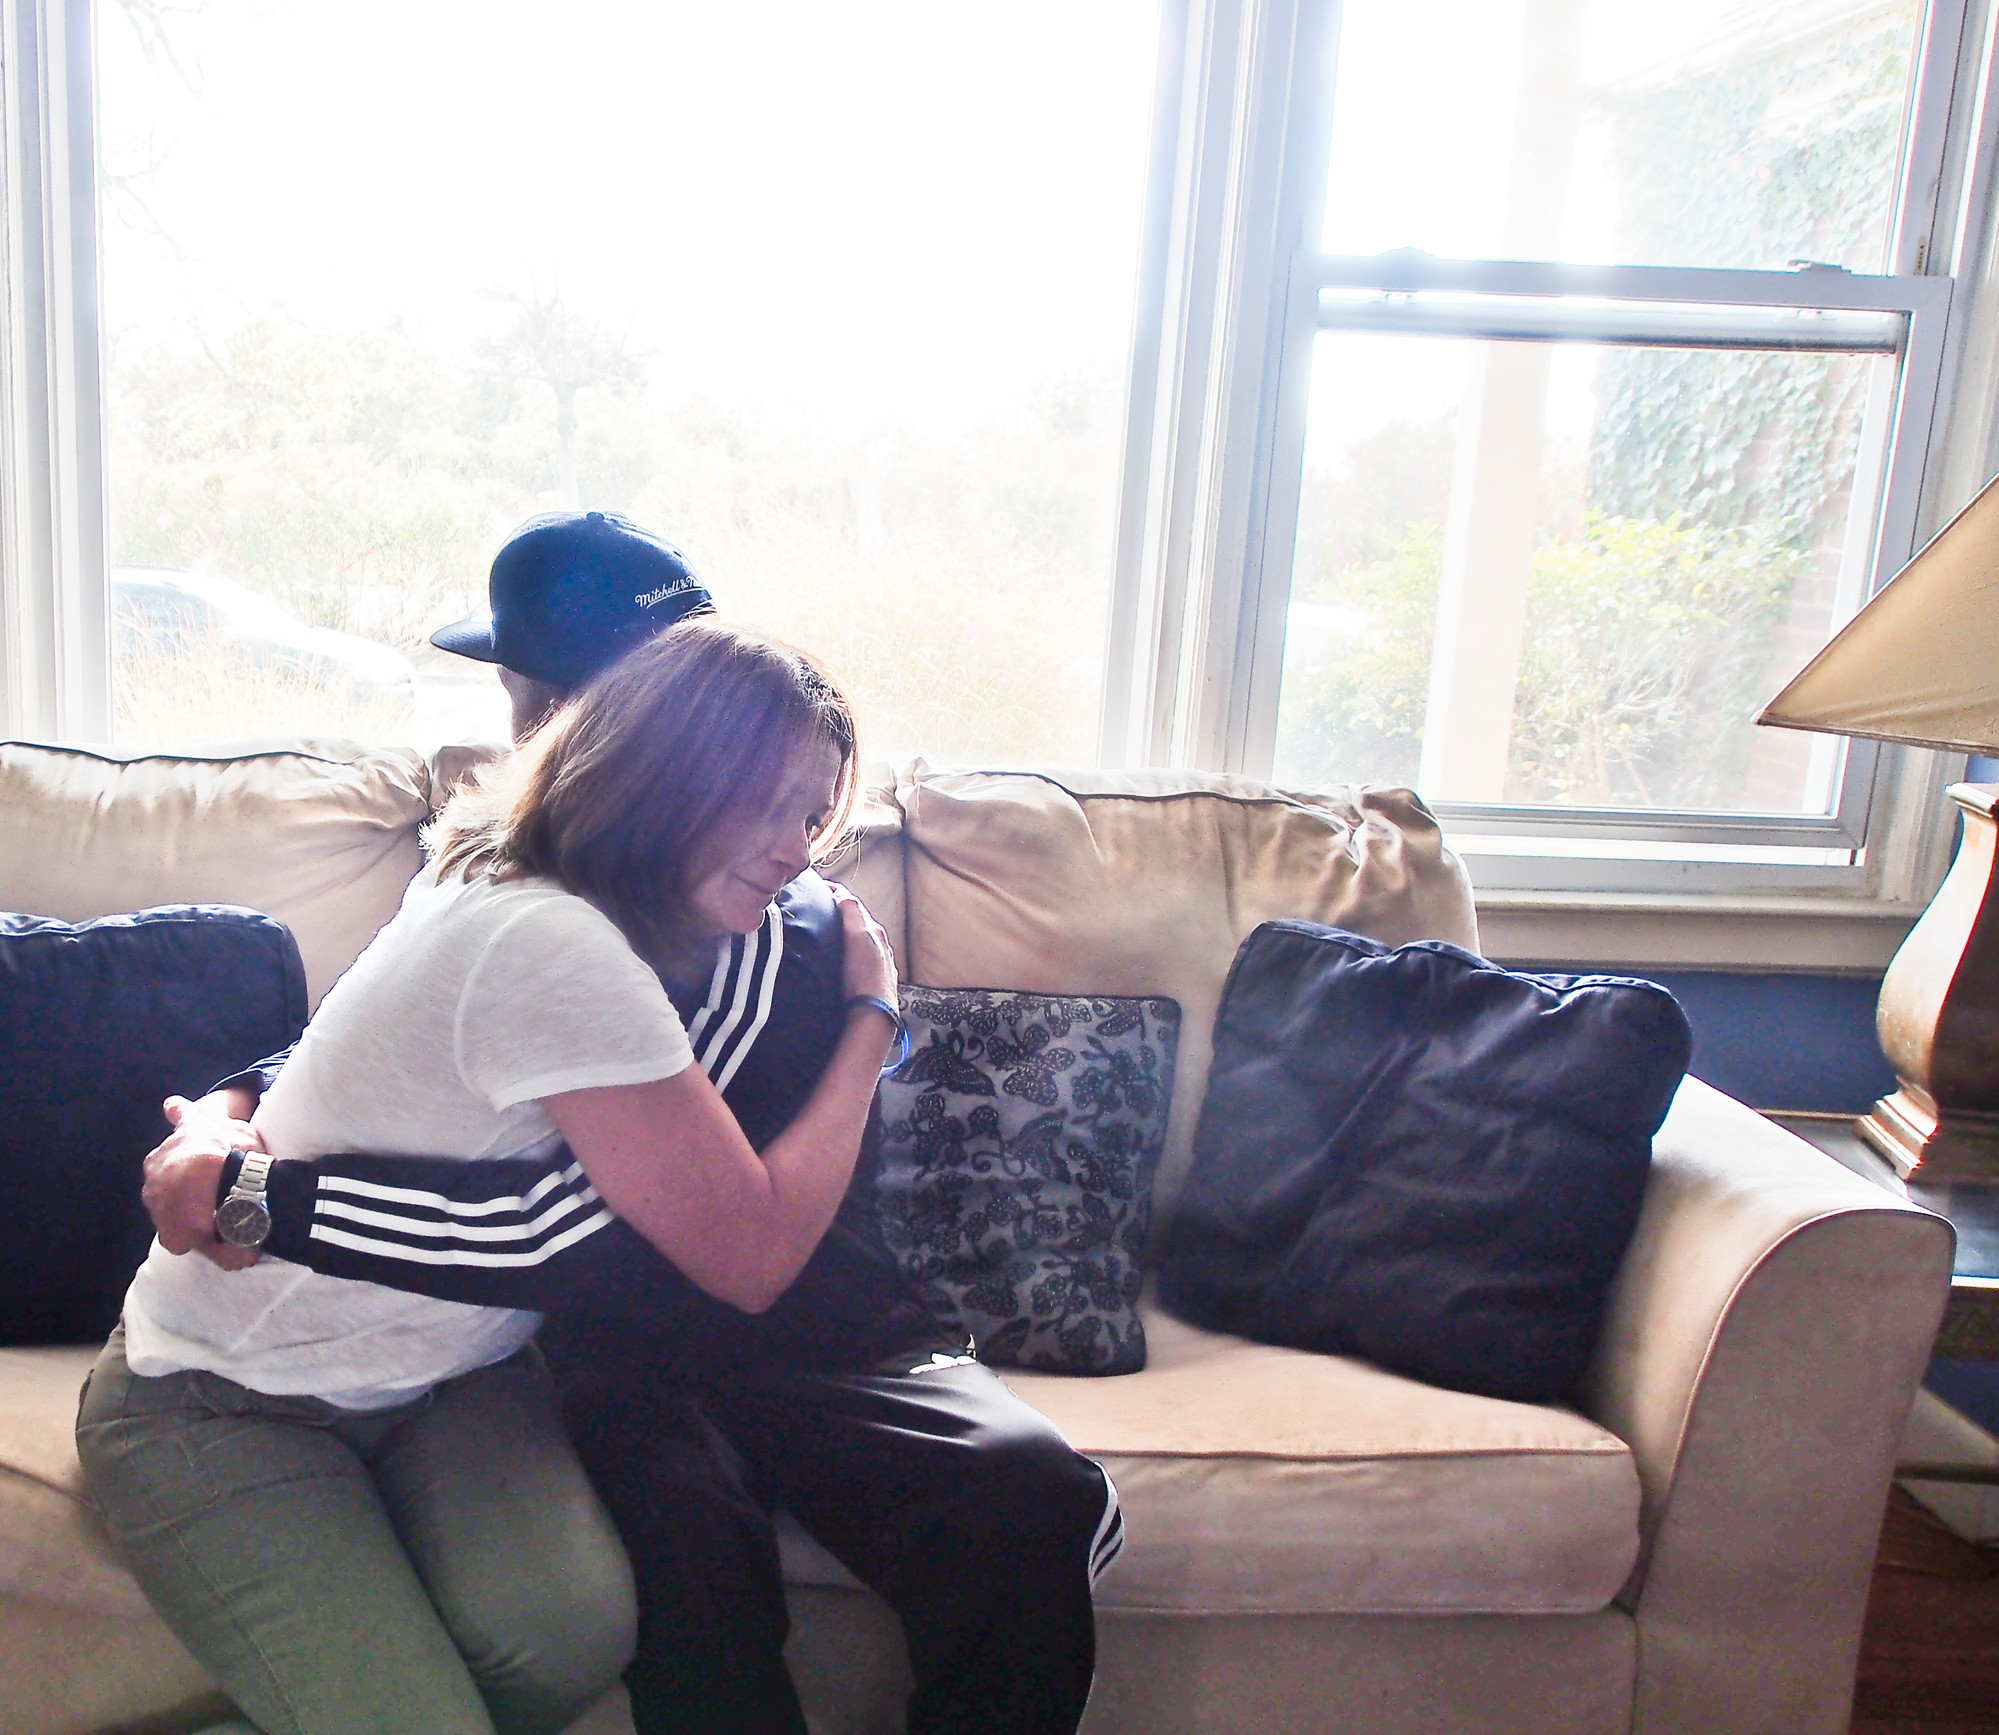 Kerri murphy hugs her son, 22, who once used up to 20 $10 bags of street heroin every day.